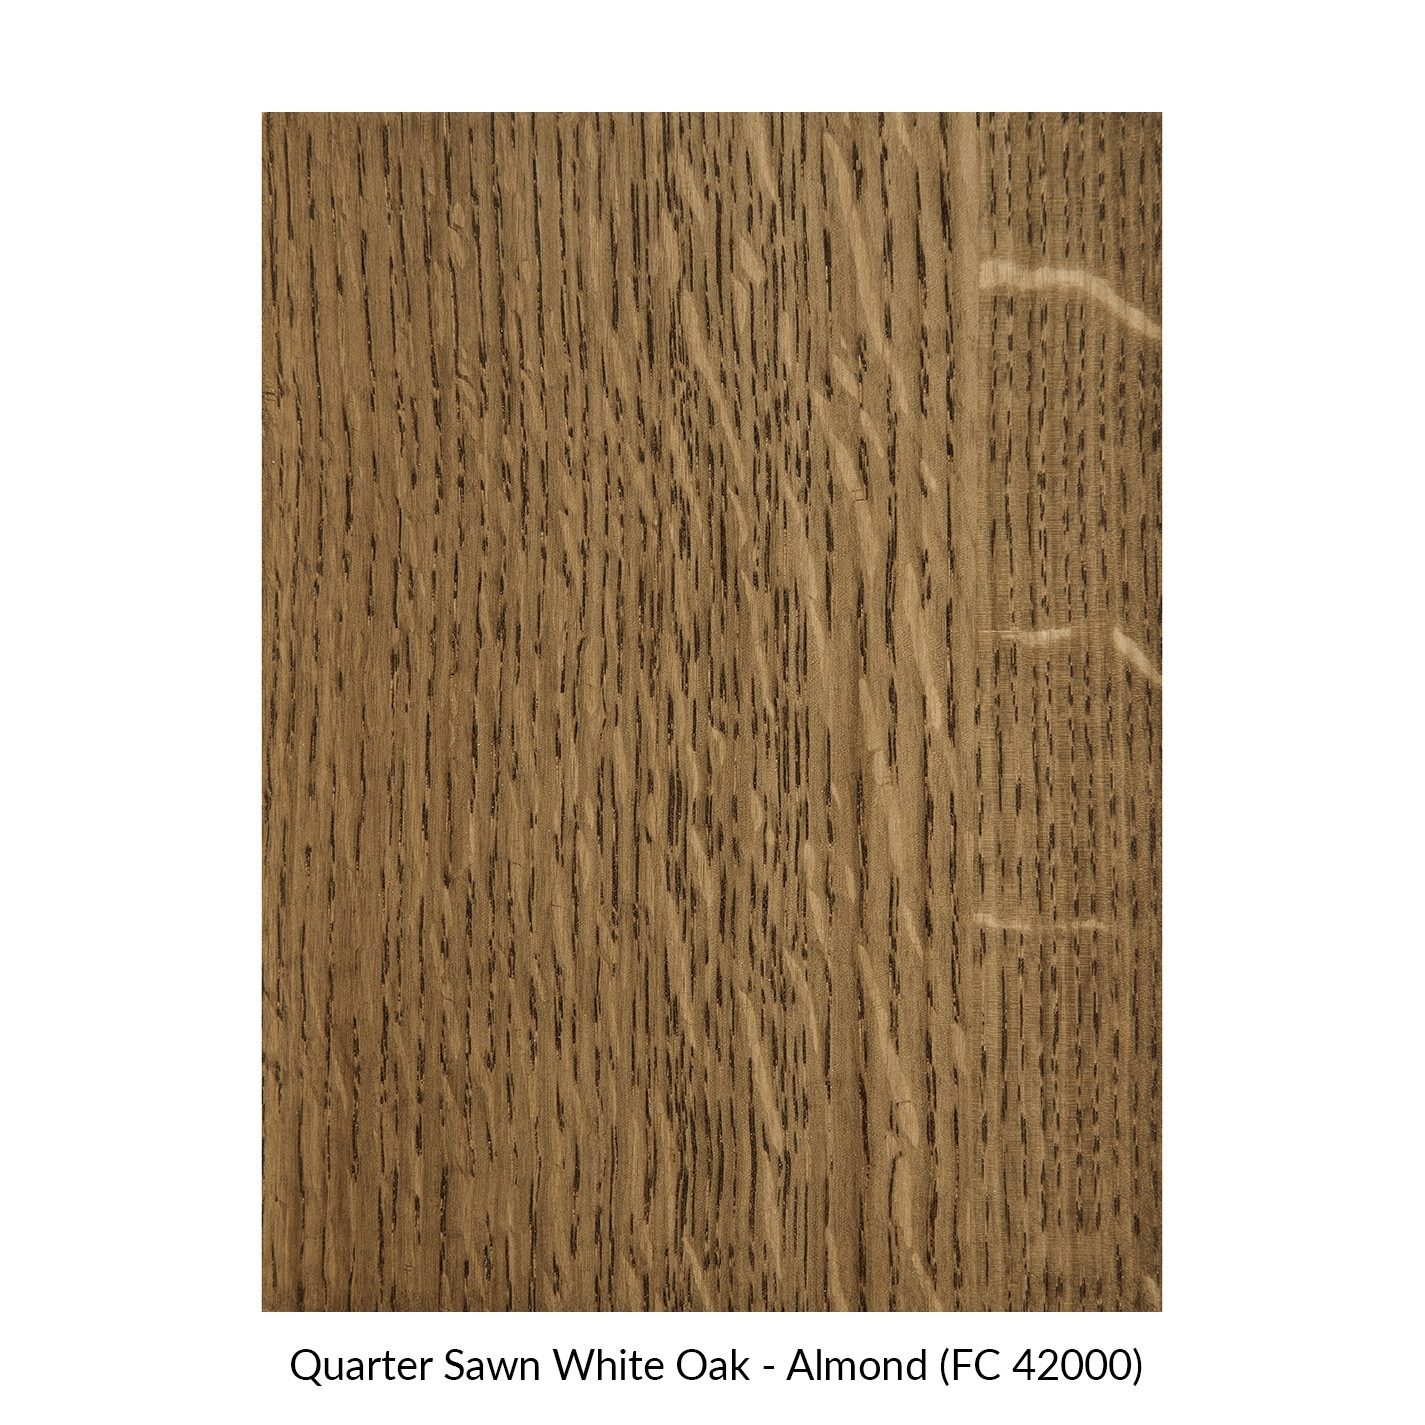 spectrum-quarter-sawn-white-oak-almond-fc-42000.jpg